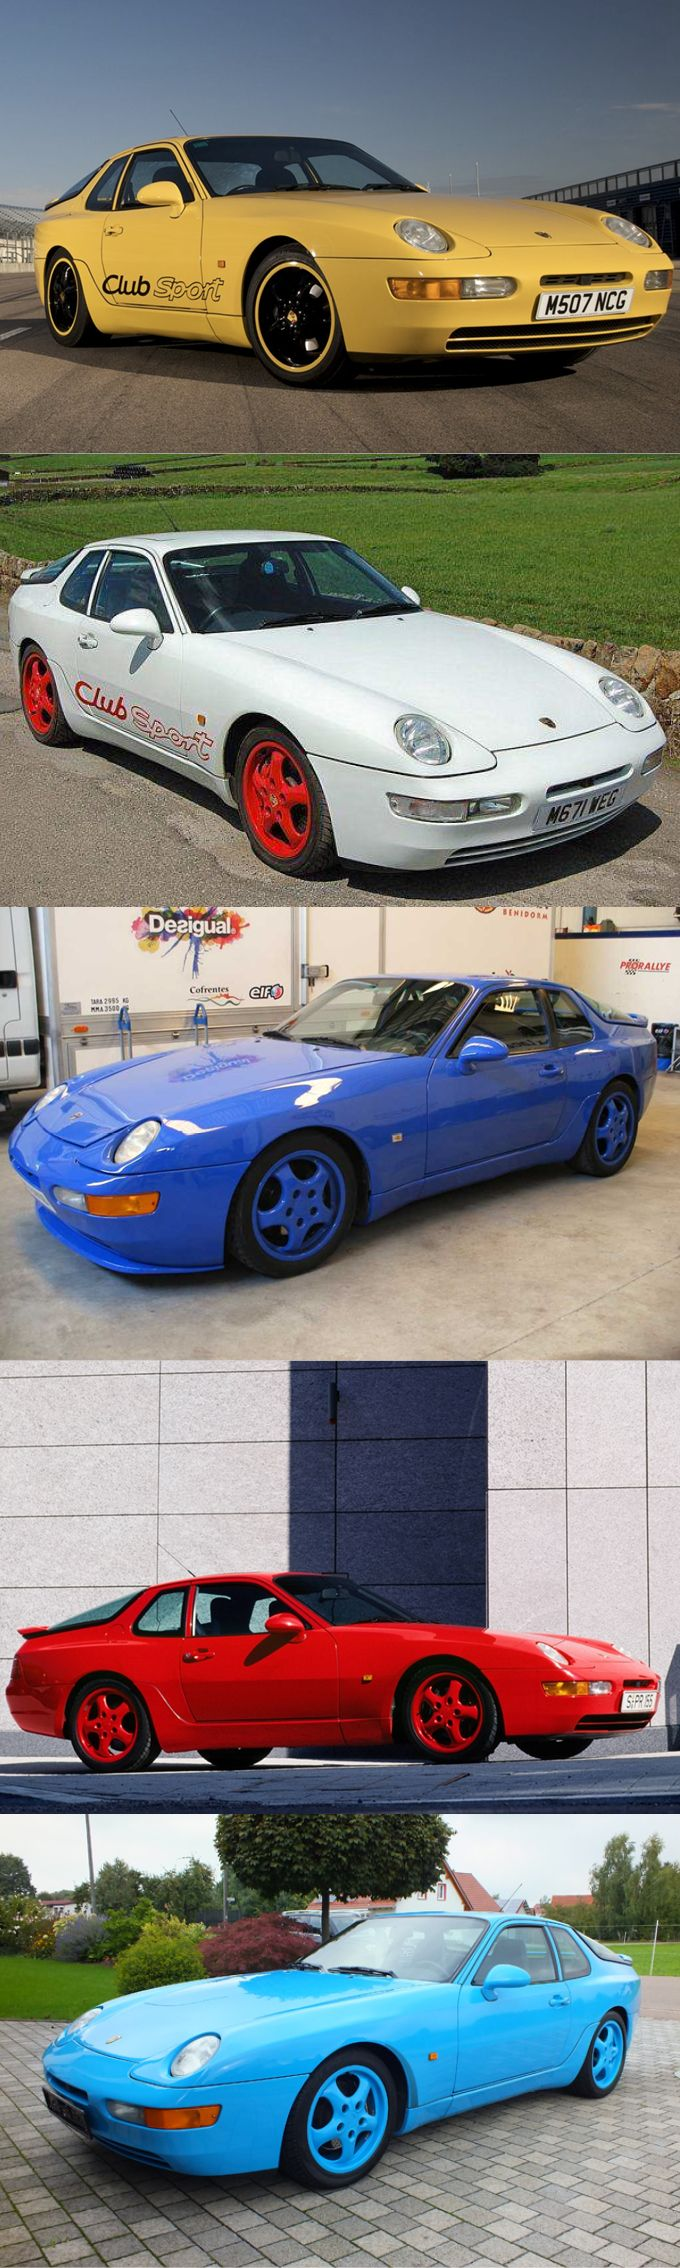 1993 Porsche 968 CS / Club Sport / Germany / yellow blue white red